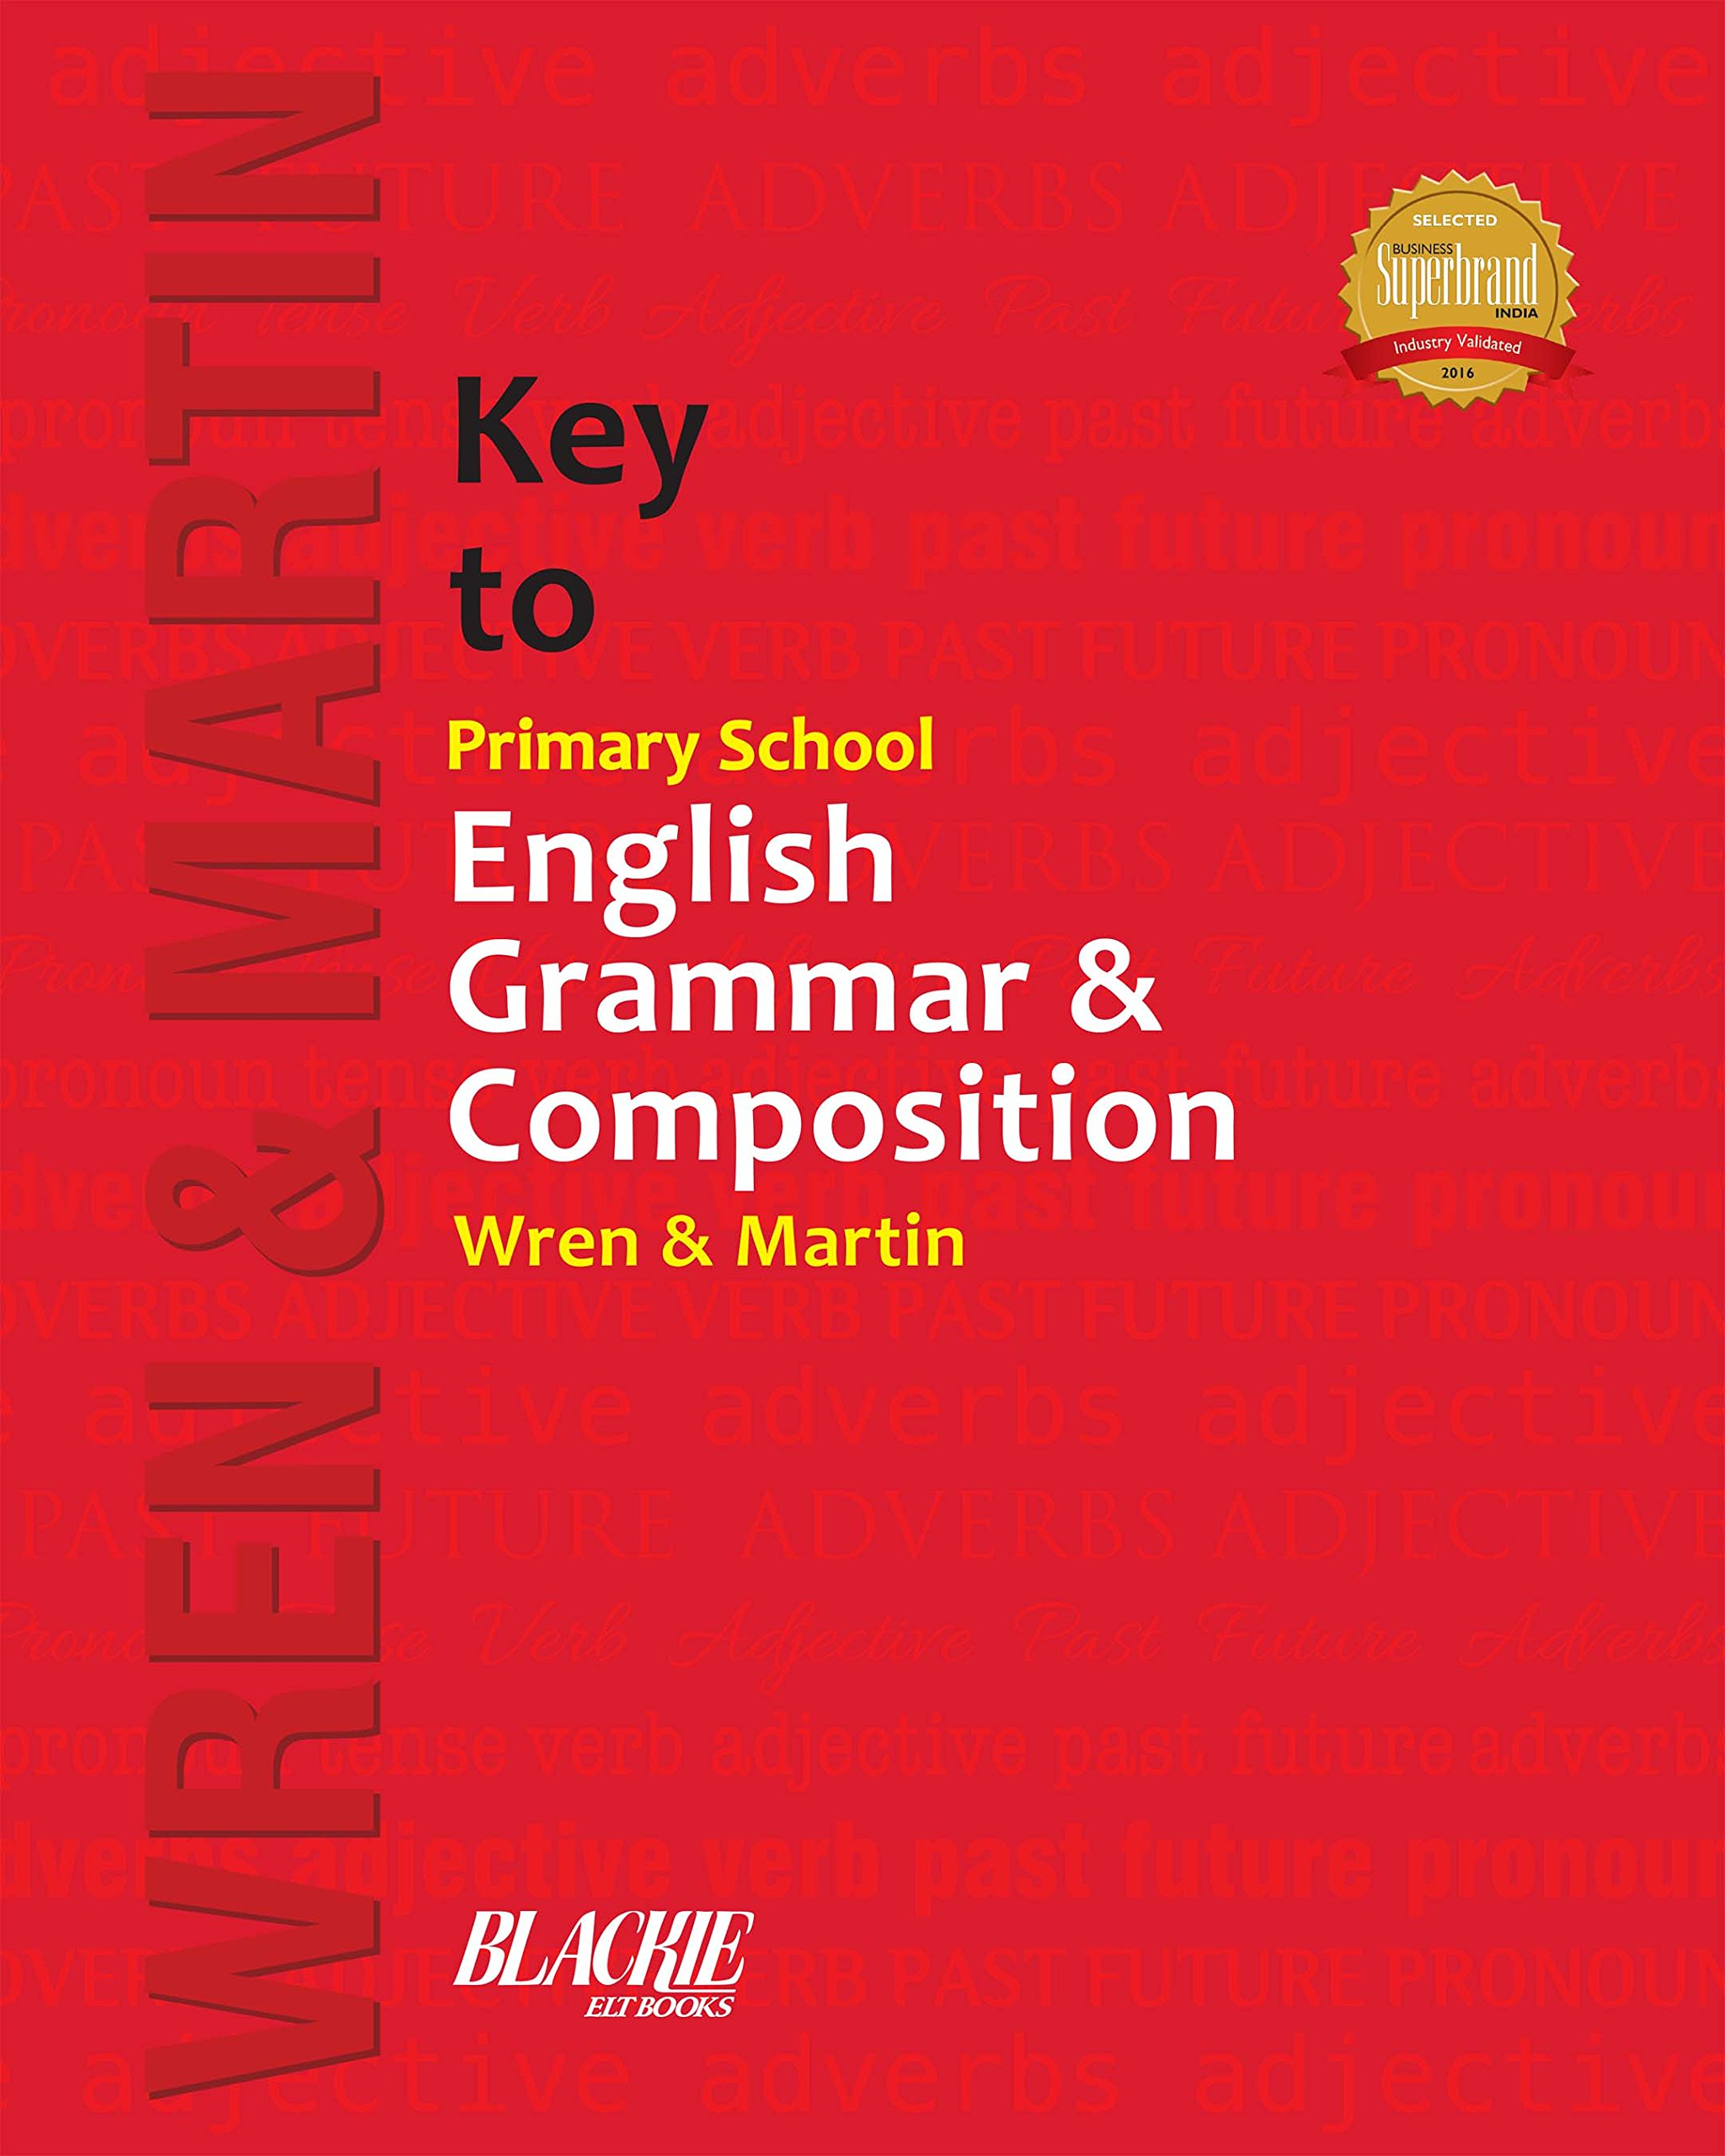 Key to Primary School English Grammar and Composition